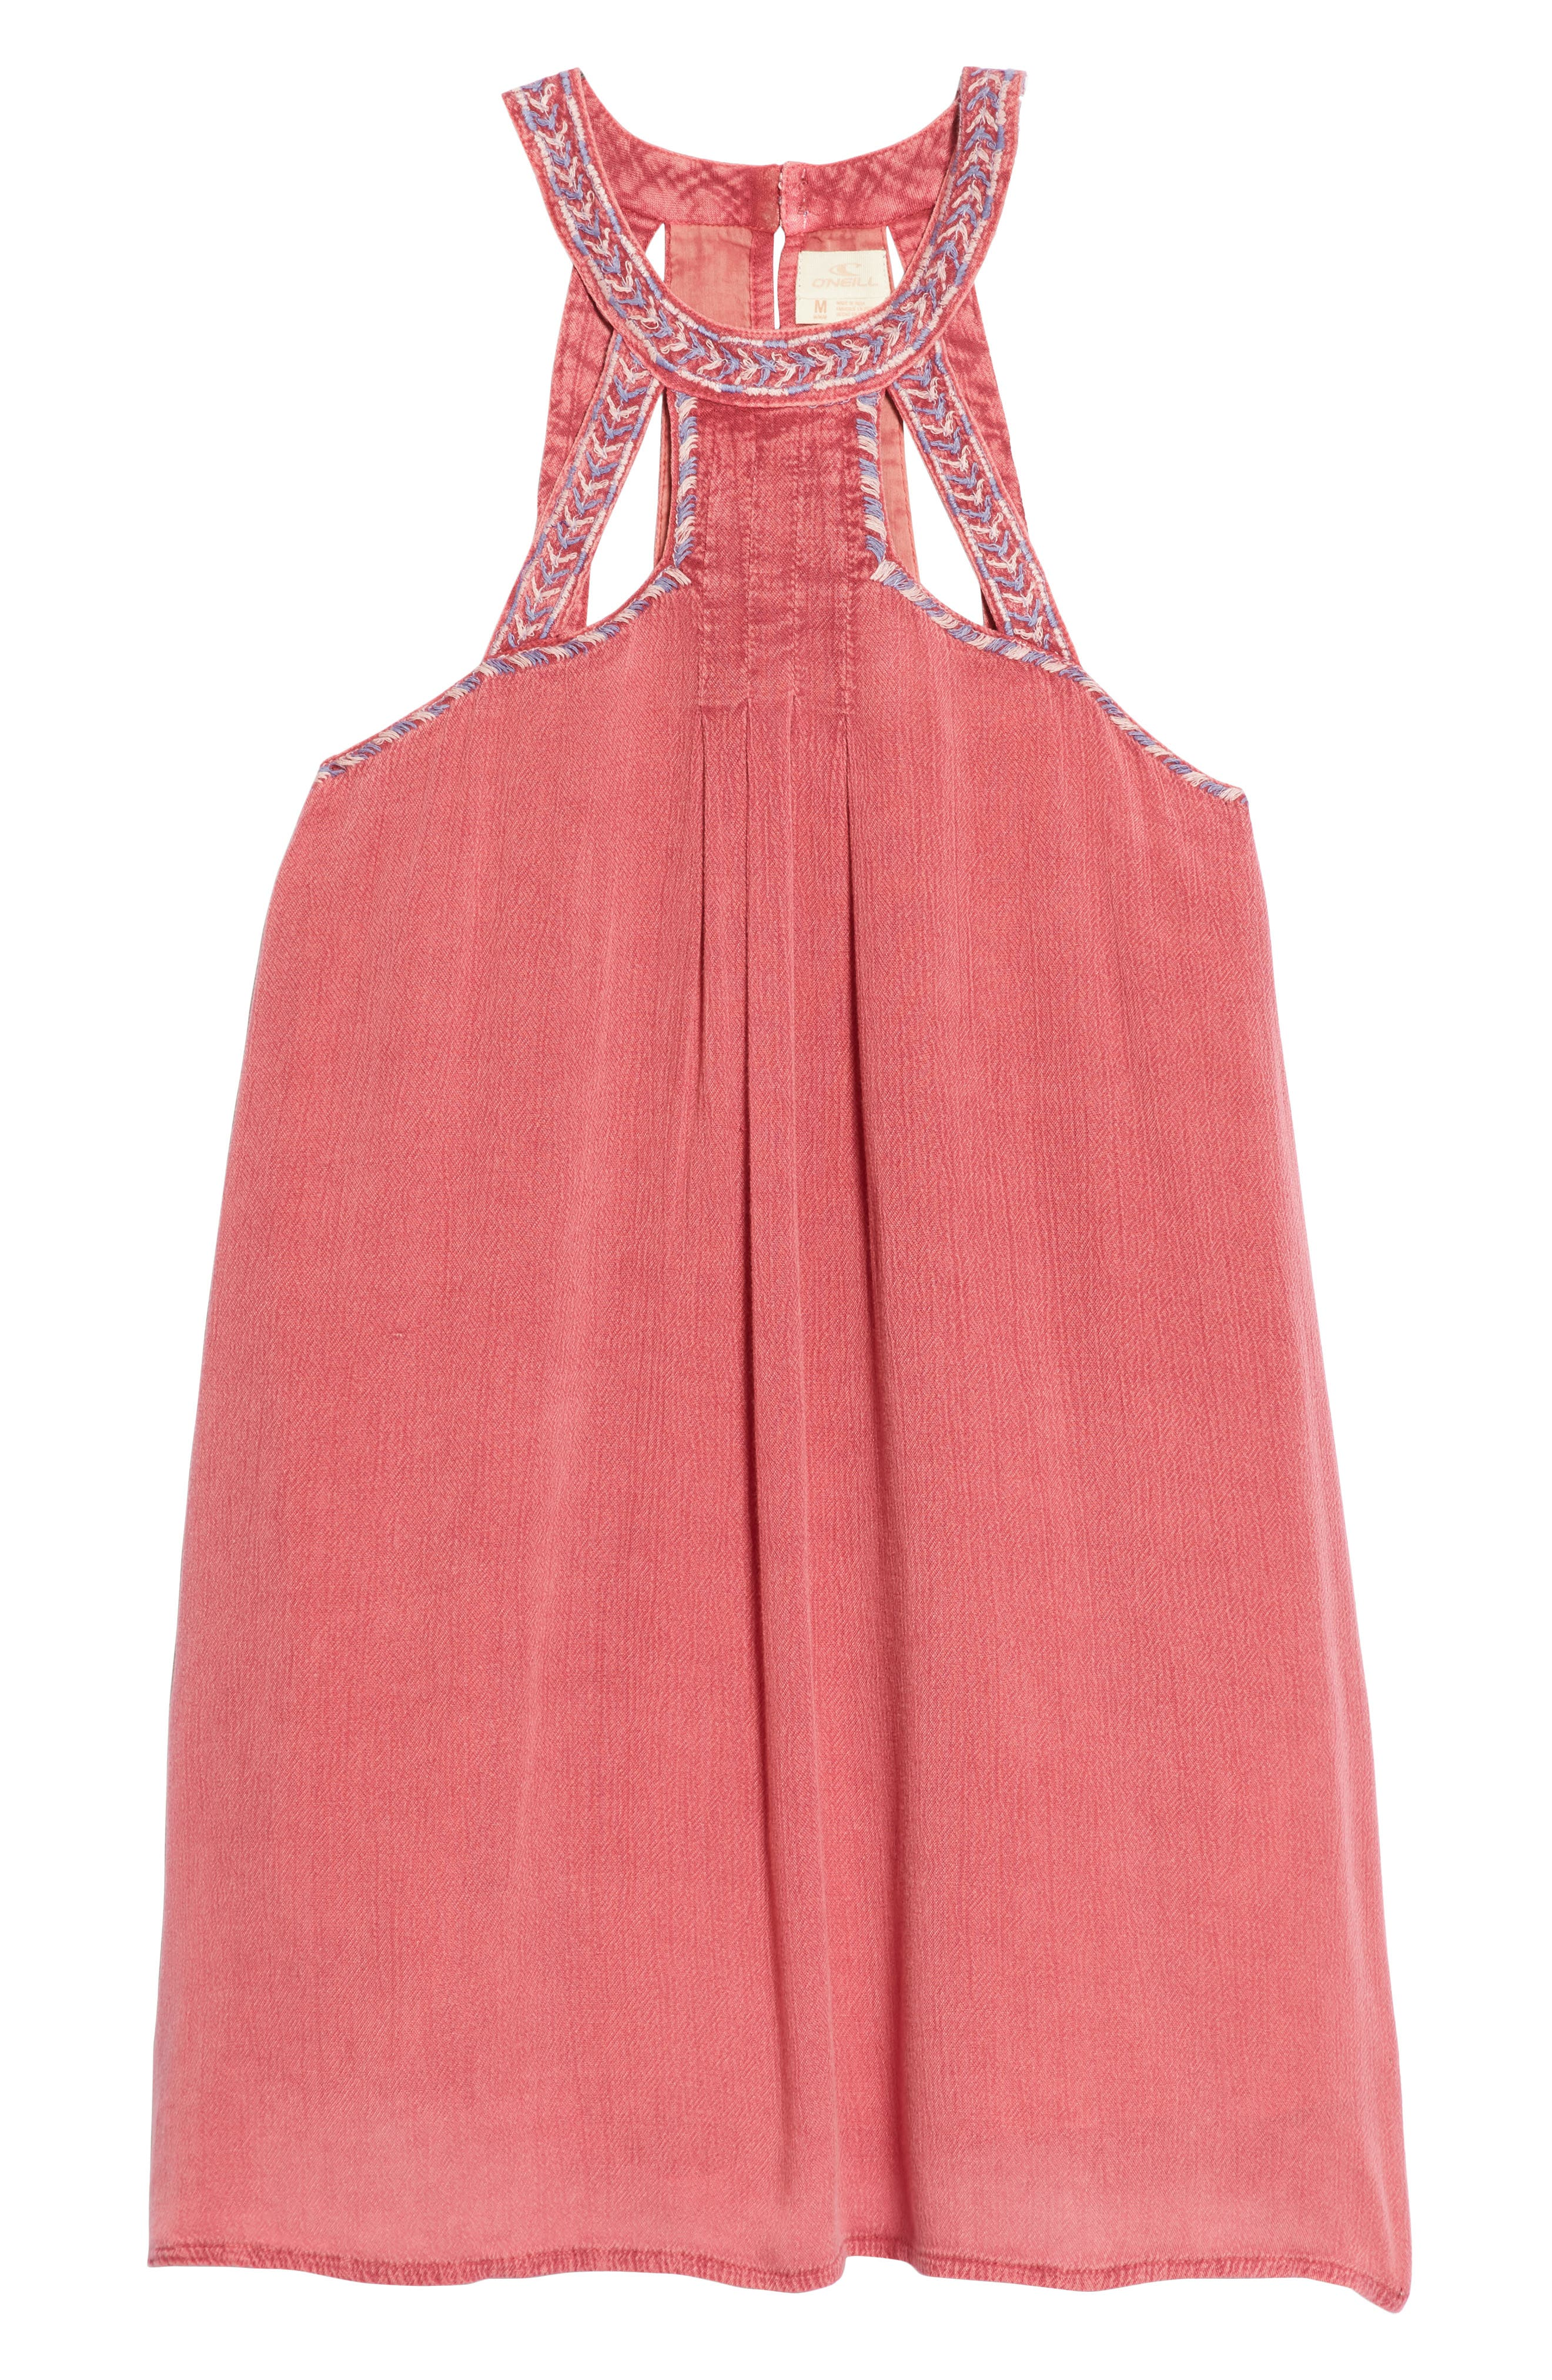 Leighton Embroidered Swing Dress,                             Main thumbnail 1, color,                             671